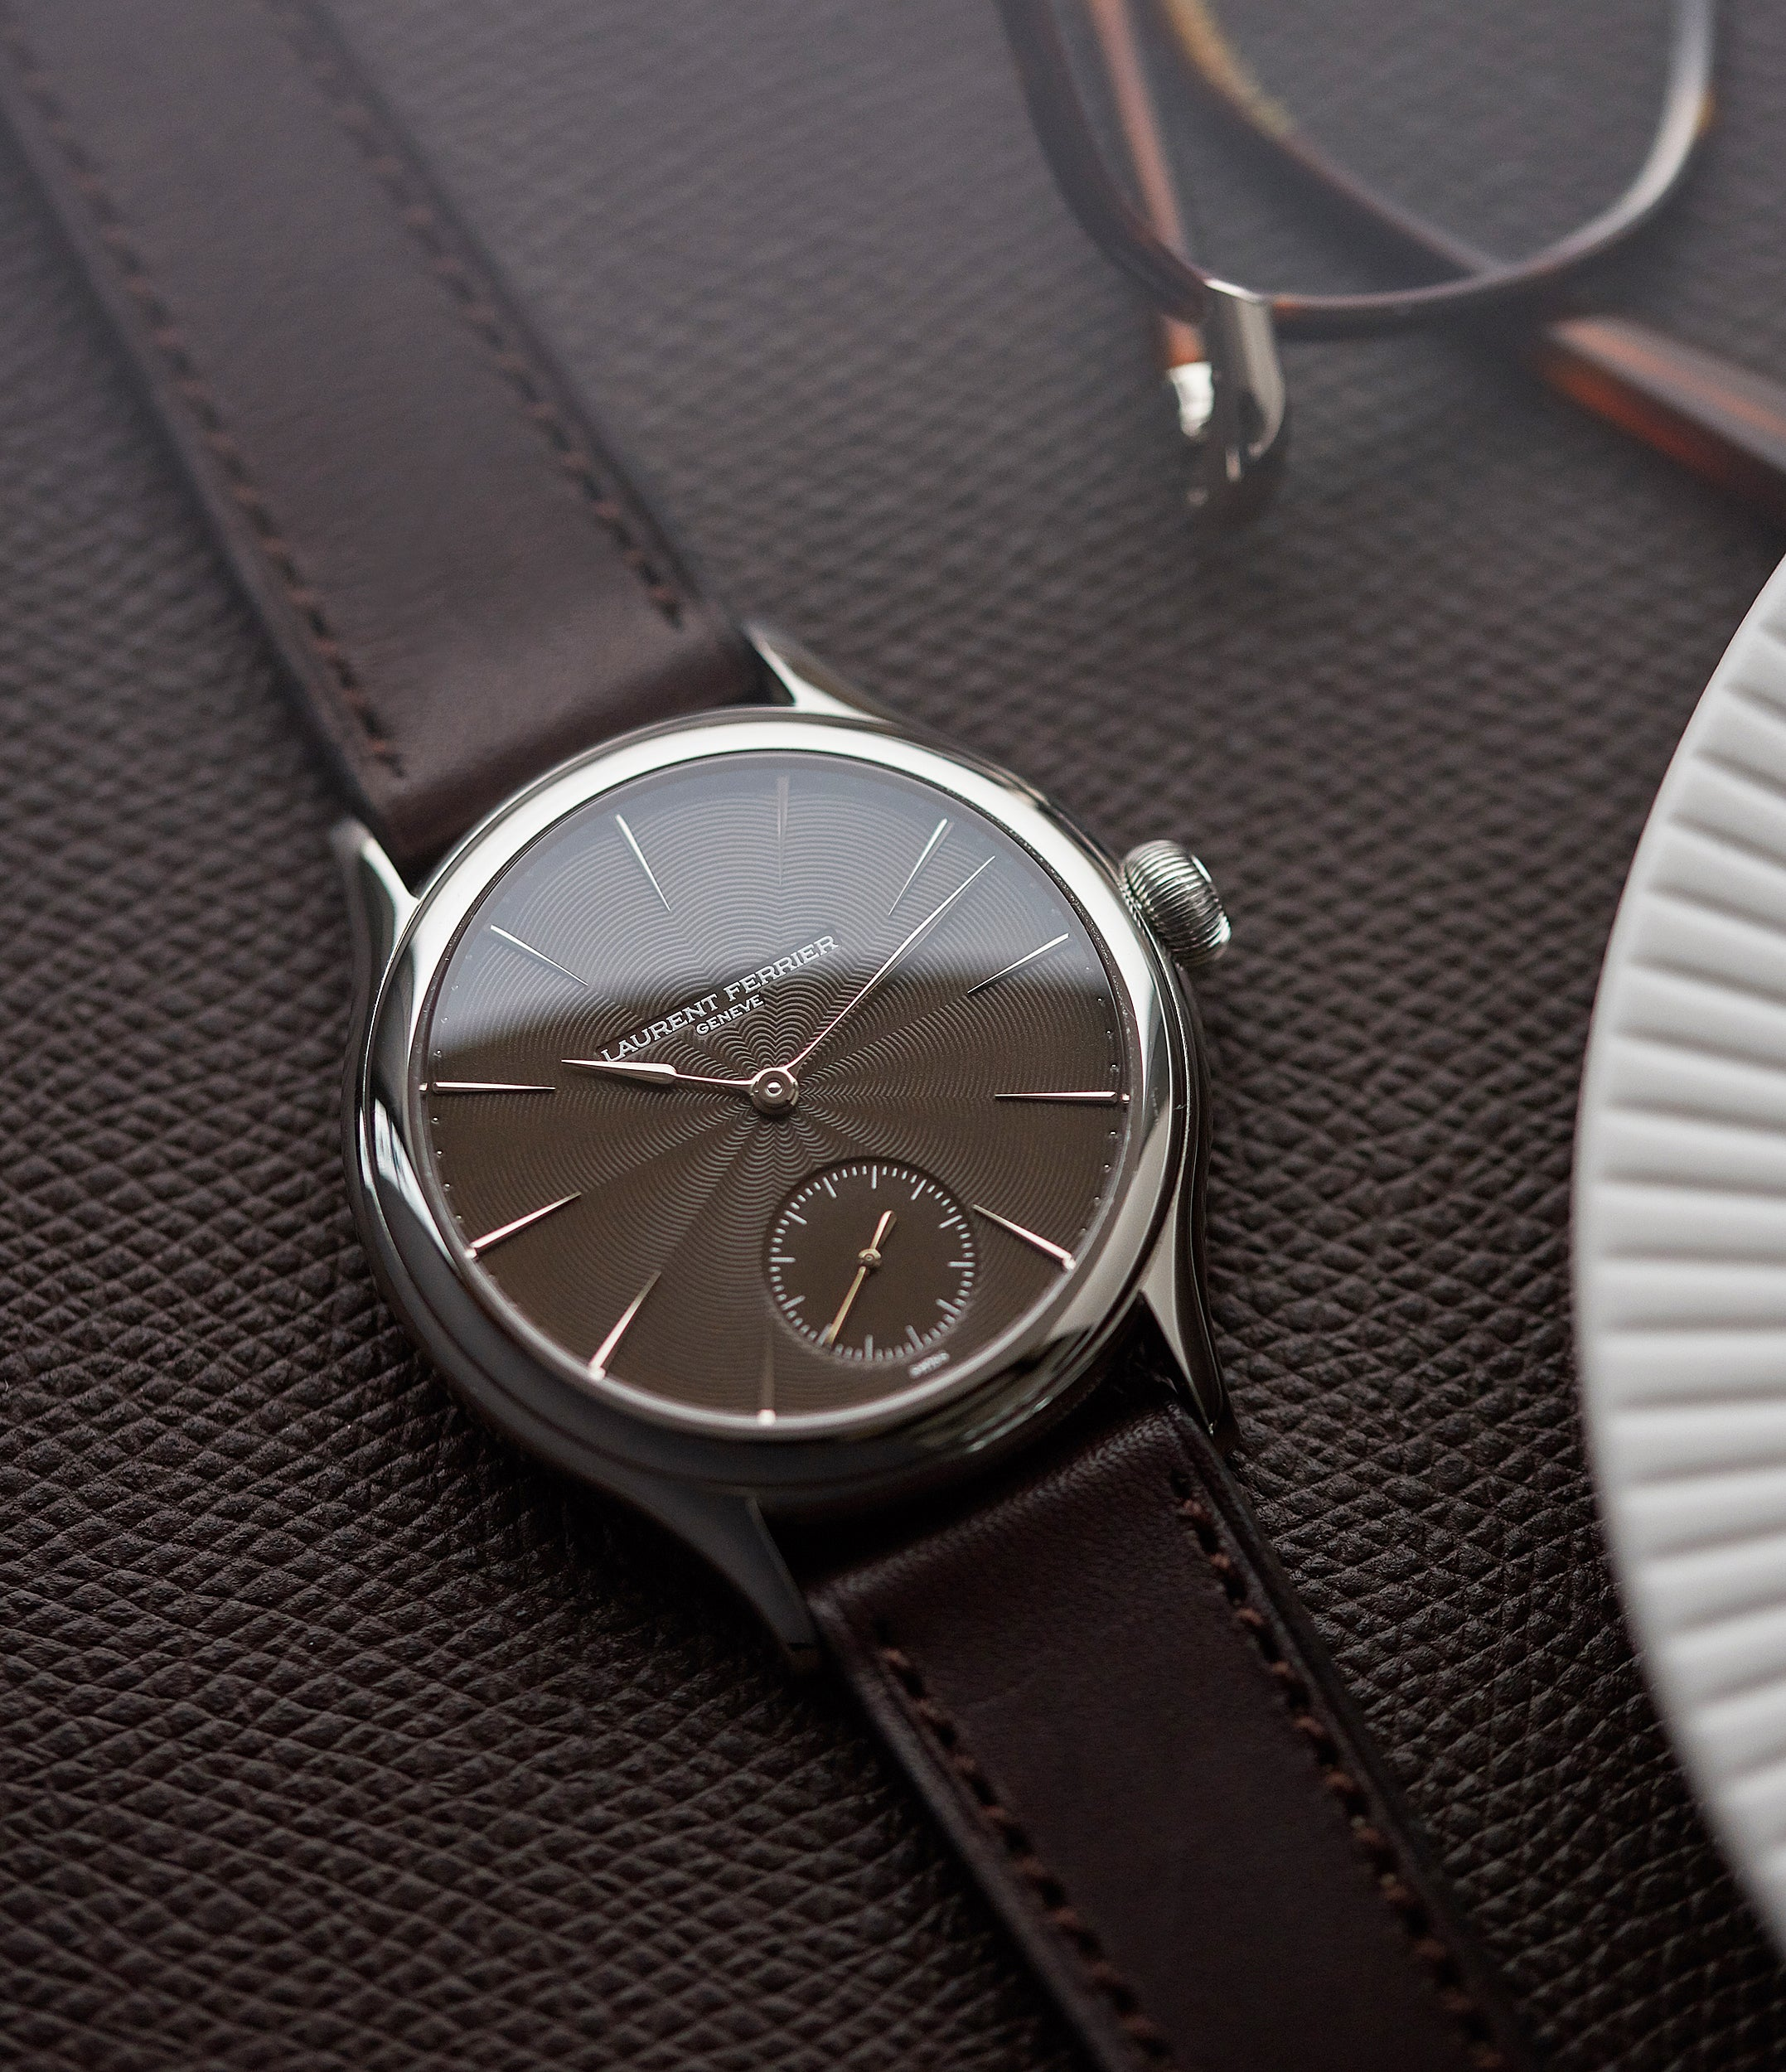 "selling Laurent Ferrier Prototype Galet Micro-rotor LF 229.01 ""Only Watch 2011"" steel watch brown dial for sale online at A Collected Man London UK approved seller of independent watchmakers"